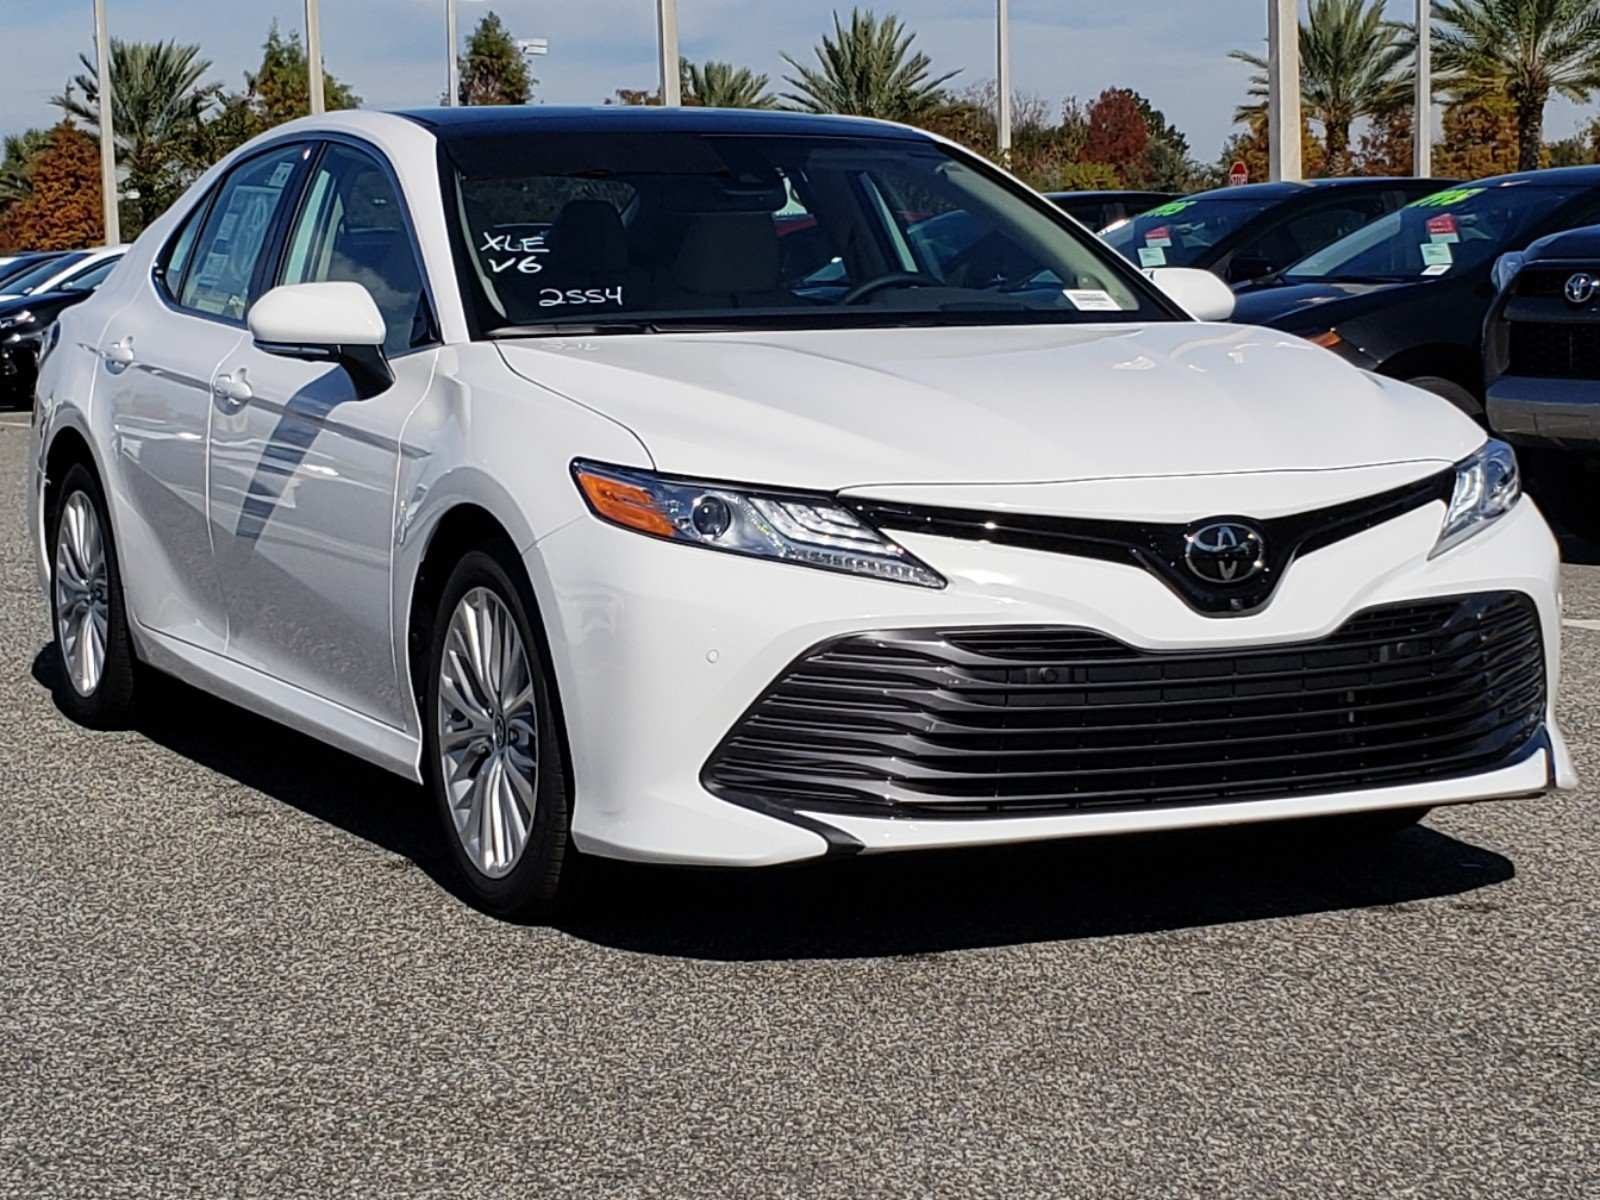 28 New Best 2019 Toyota Camry Xle V6 Review And Price Review with Best 2019 Toyota Camry Xle V6 Review And Price